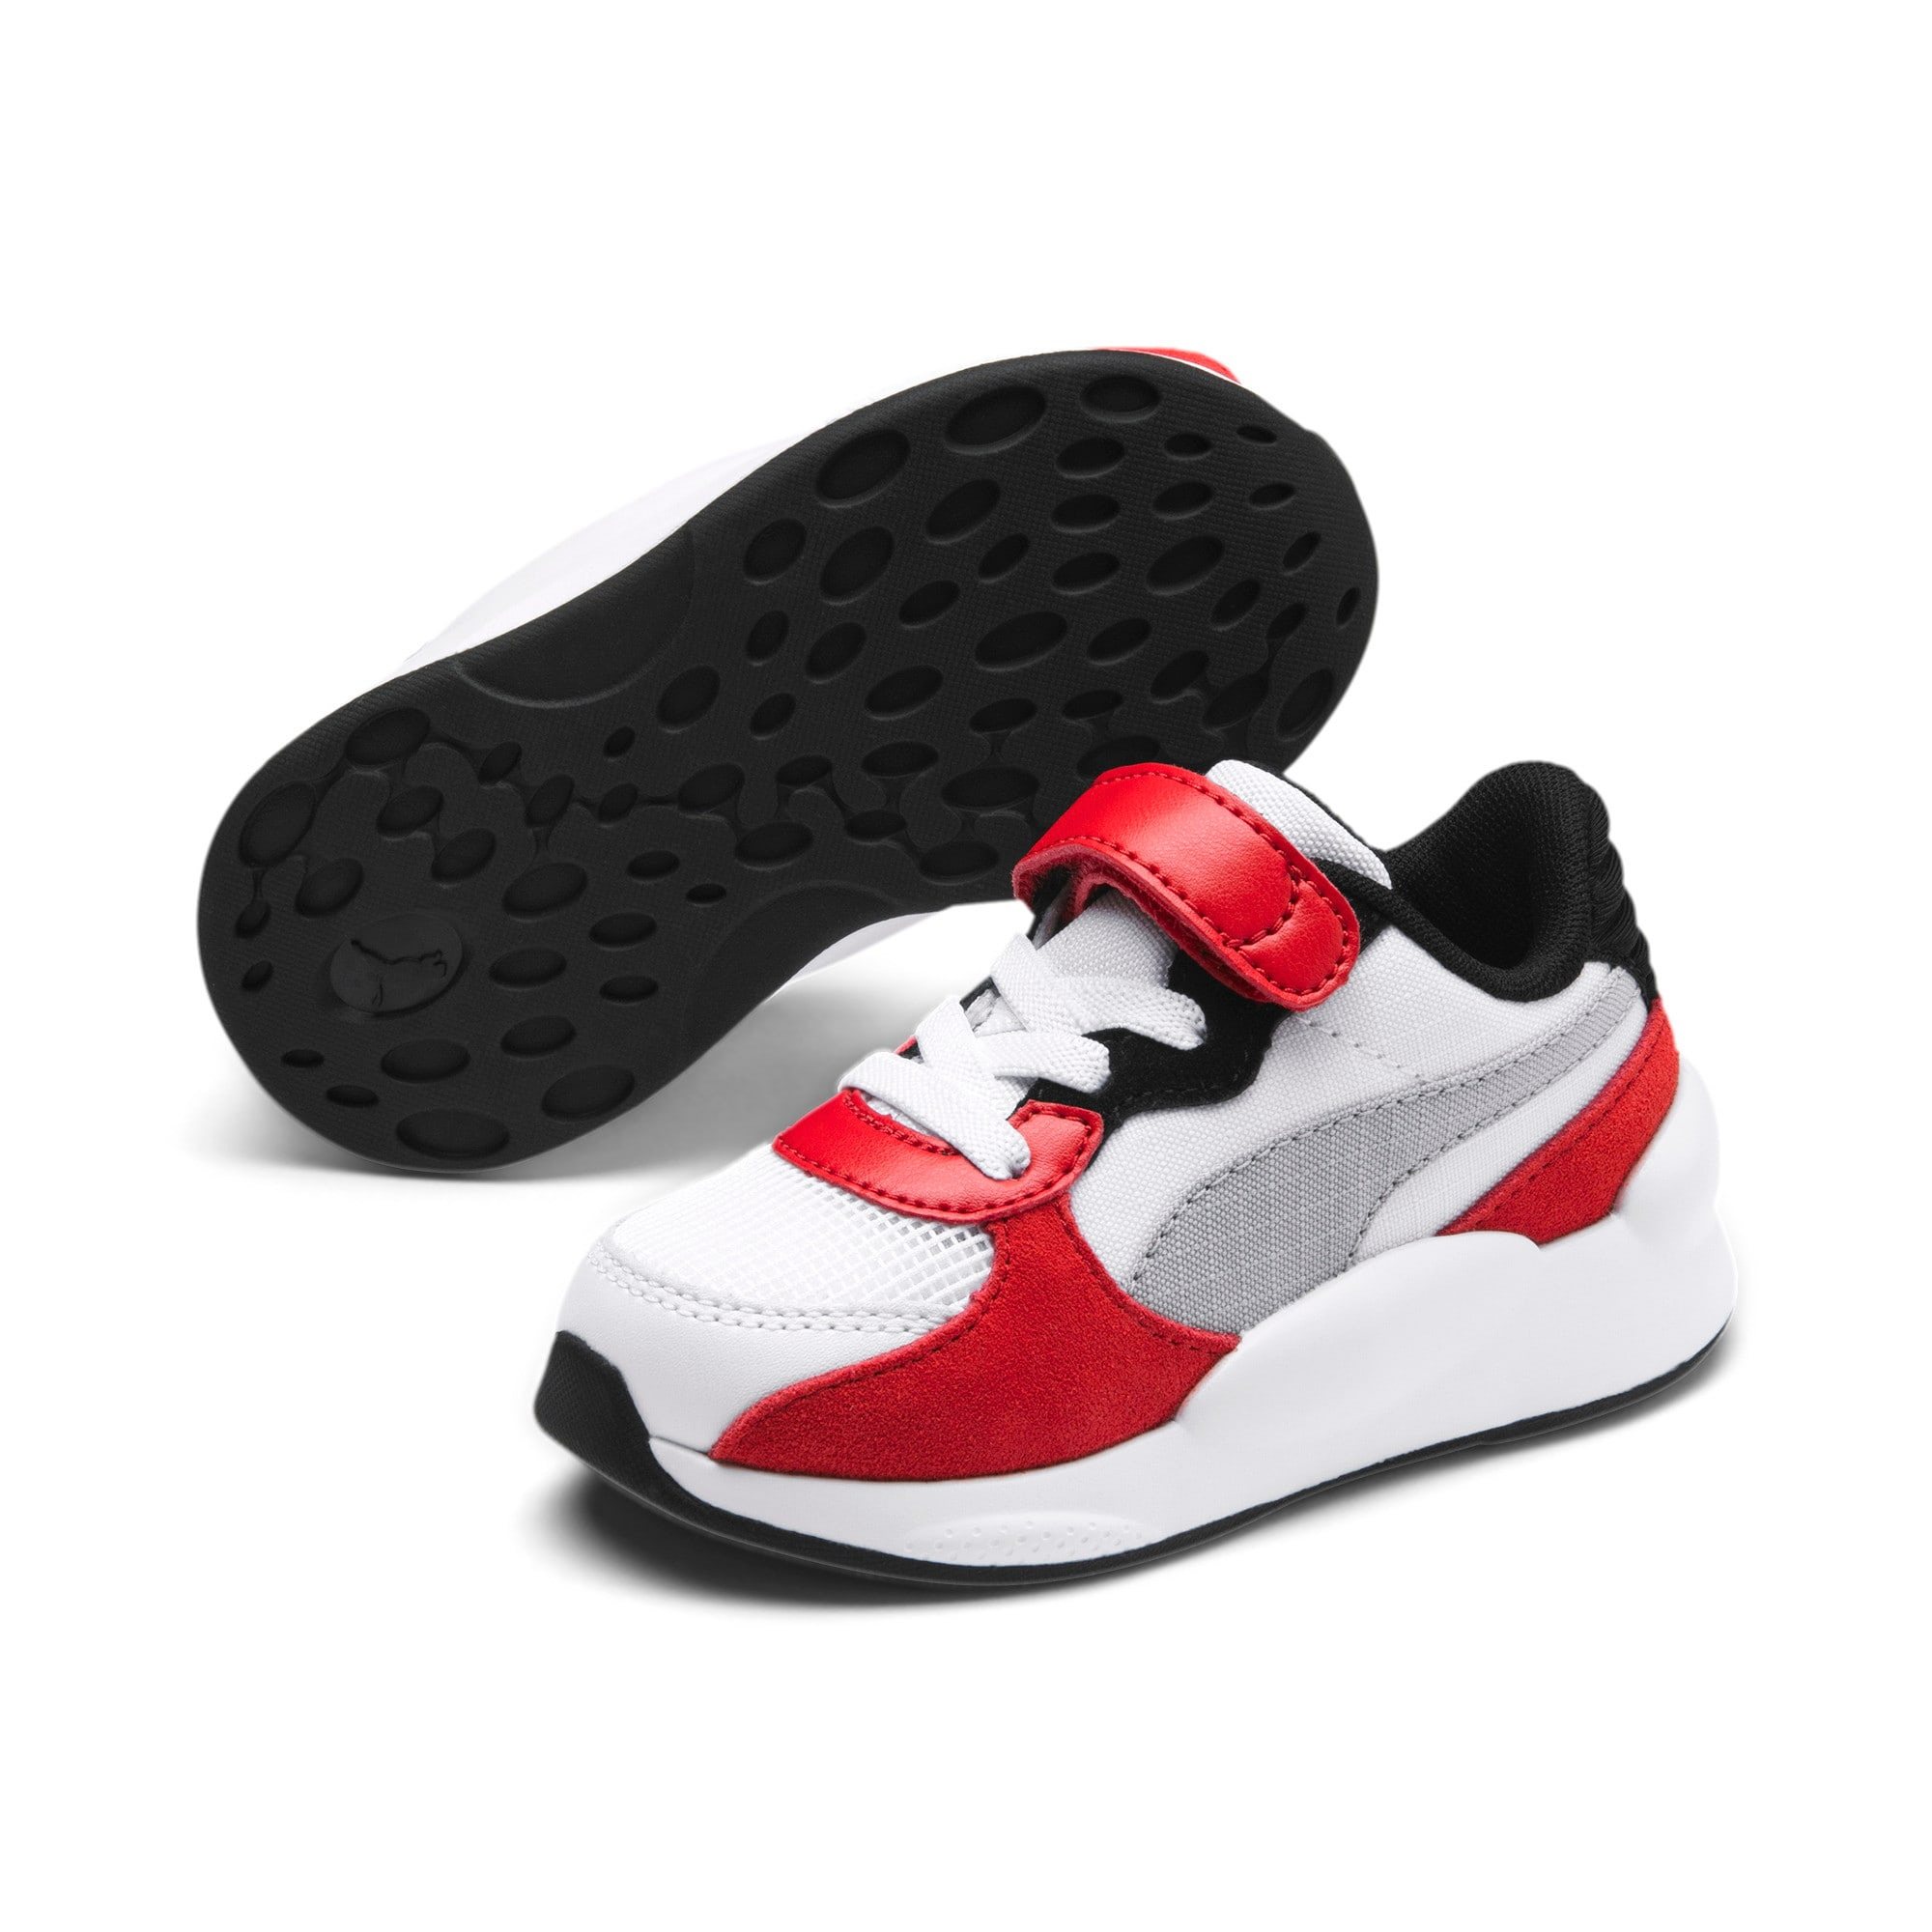 Thumbnail 2 of RS 9.8 Space AC Toddler Shoes, Puma White-High Risk Red, medium